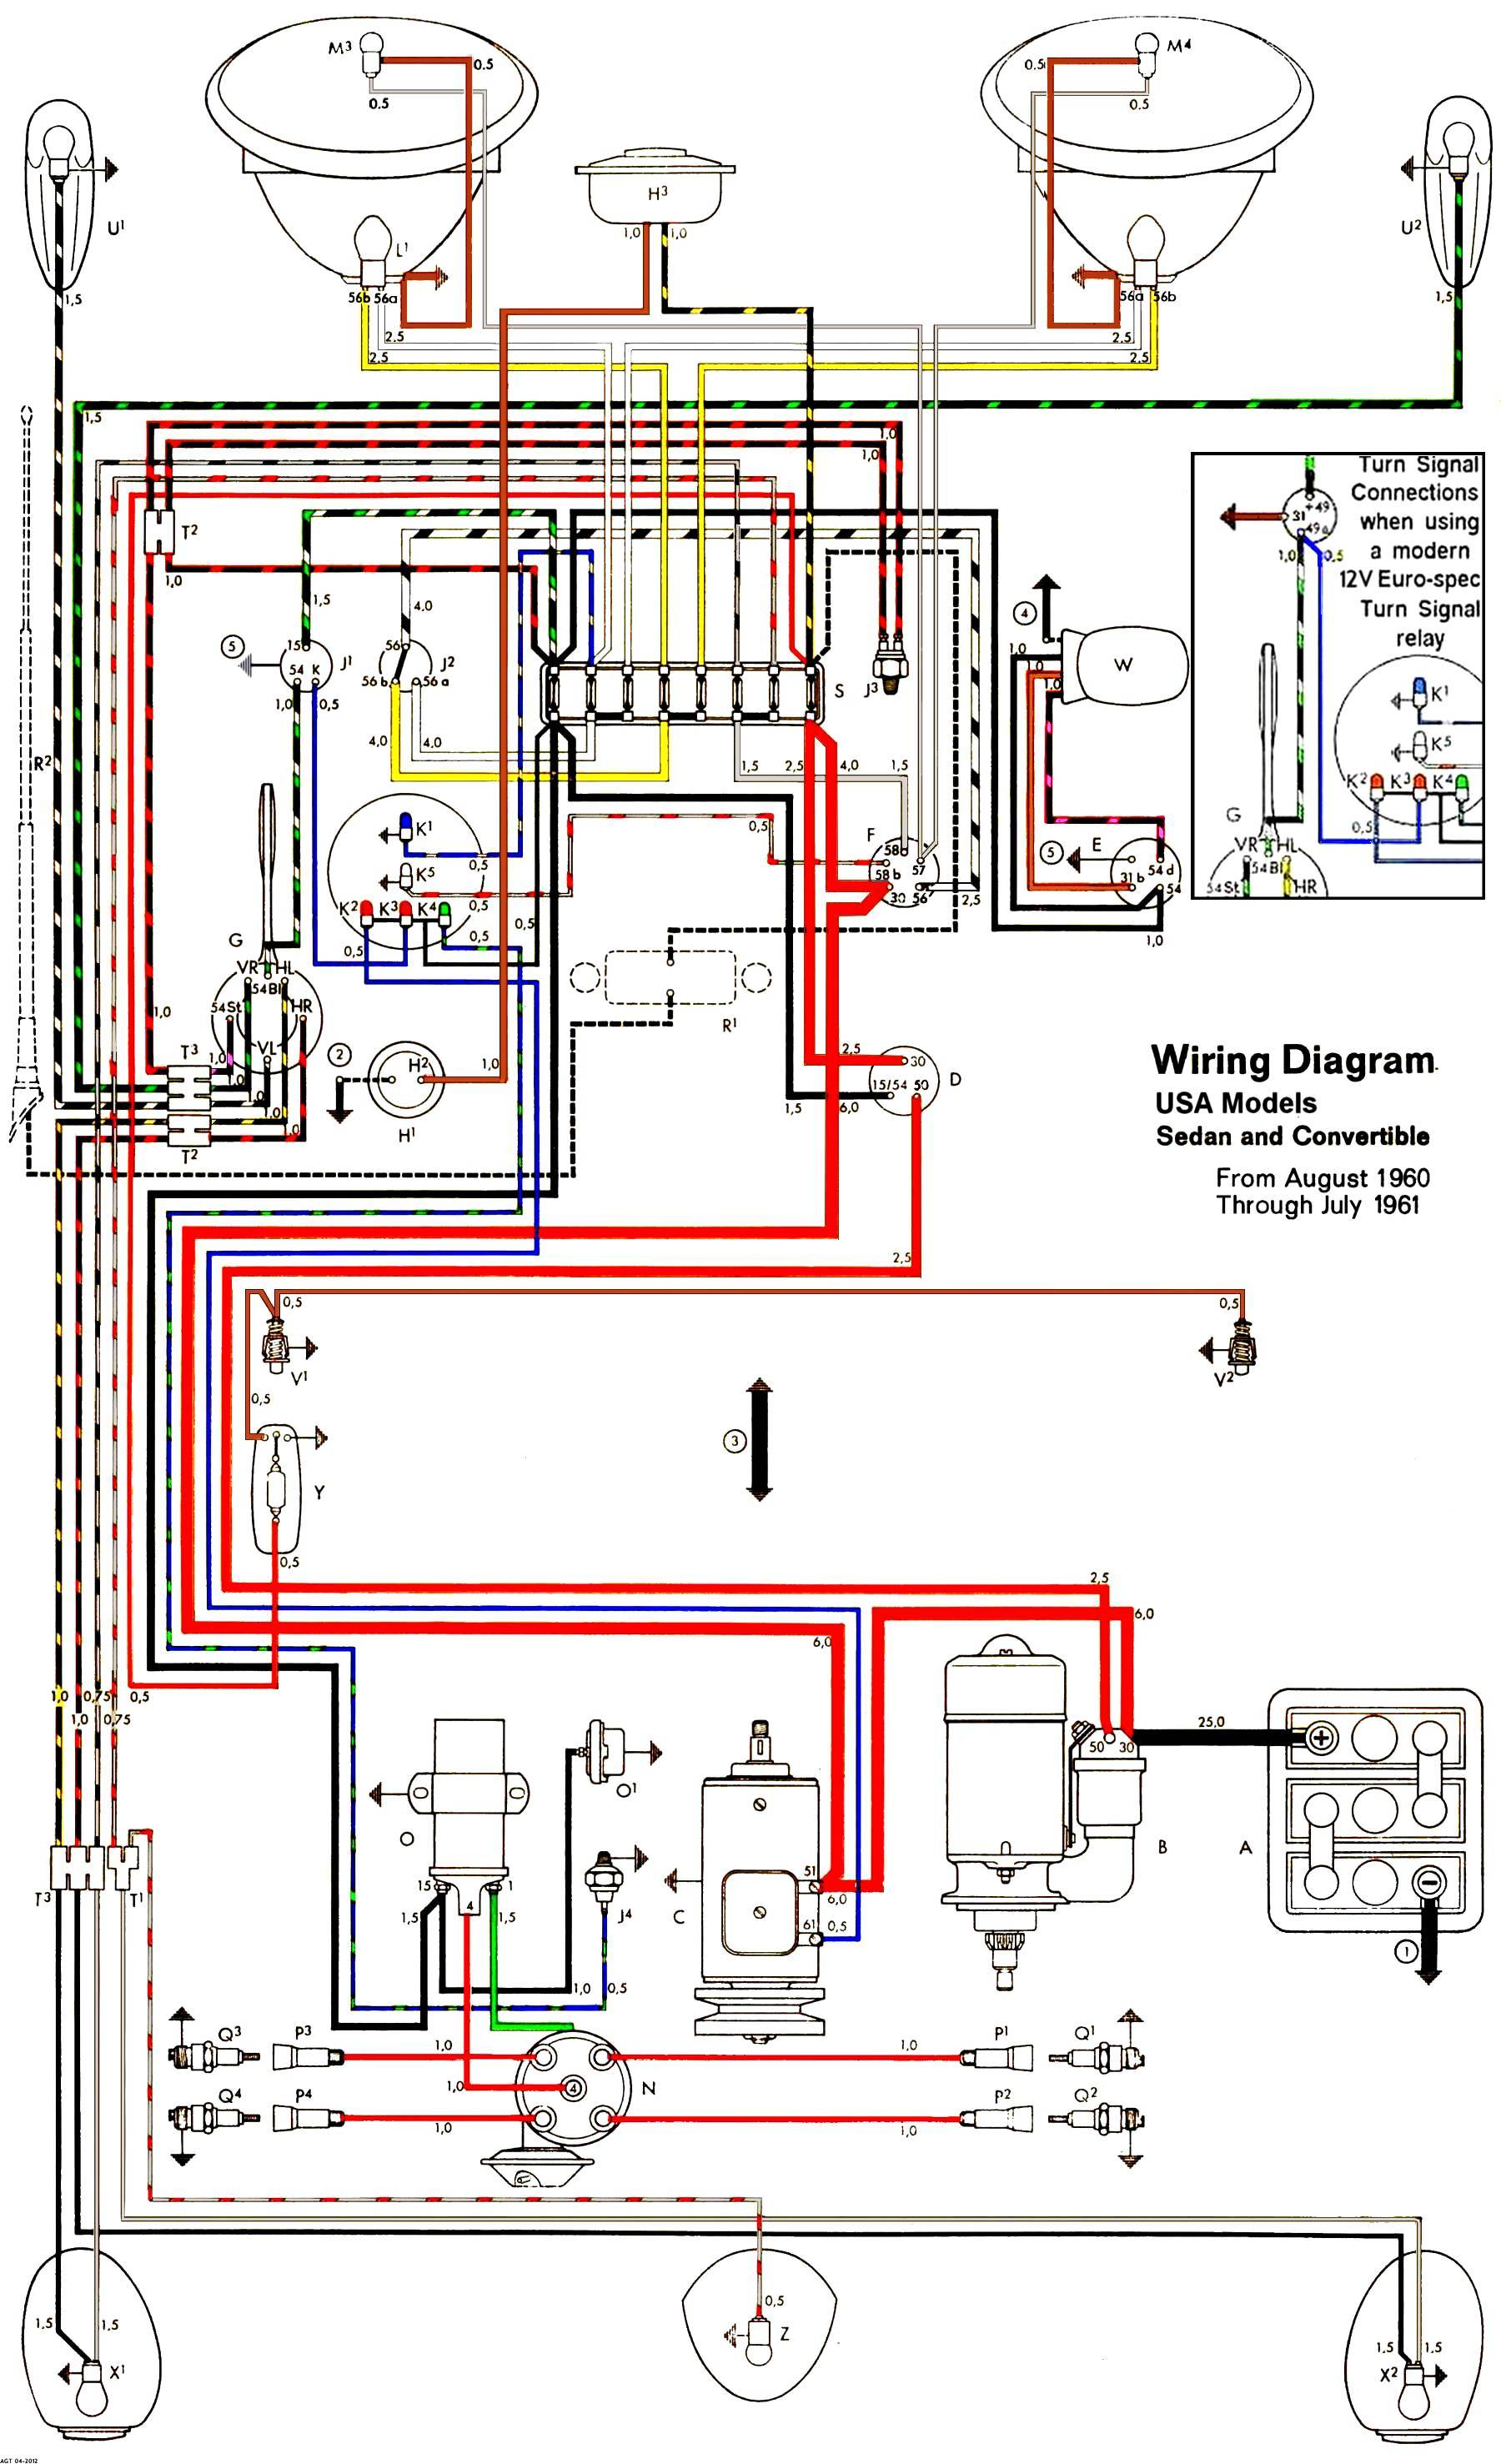 TheSamba.com :: Type 1 Wiring Diagrams